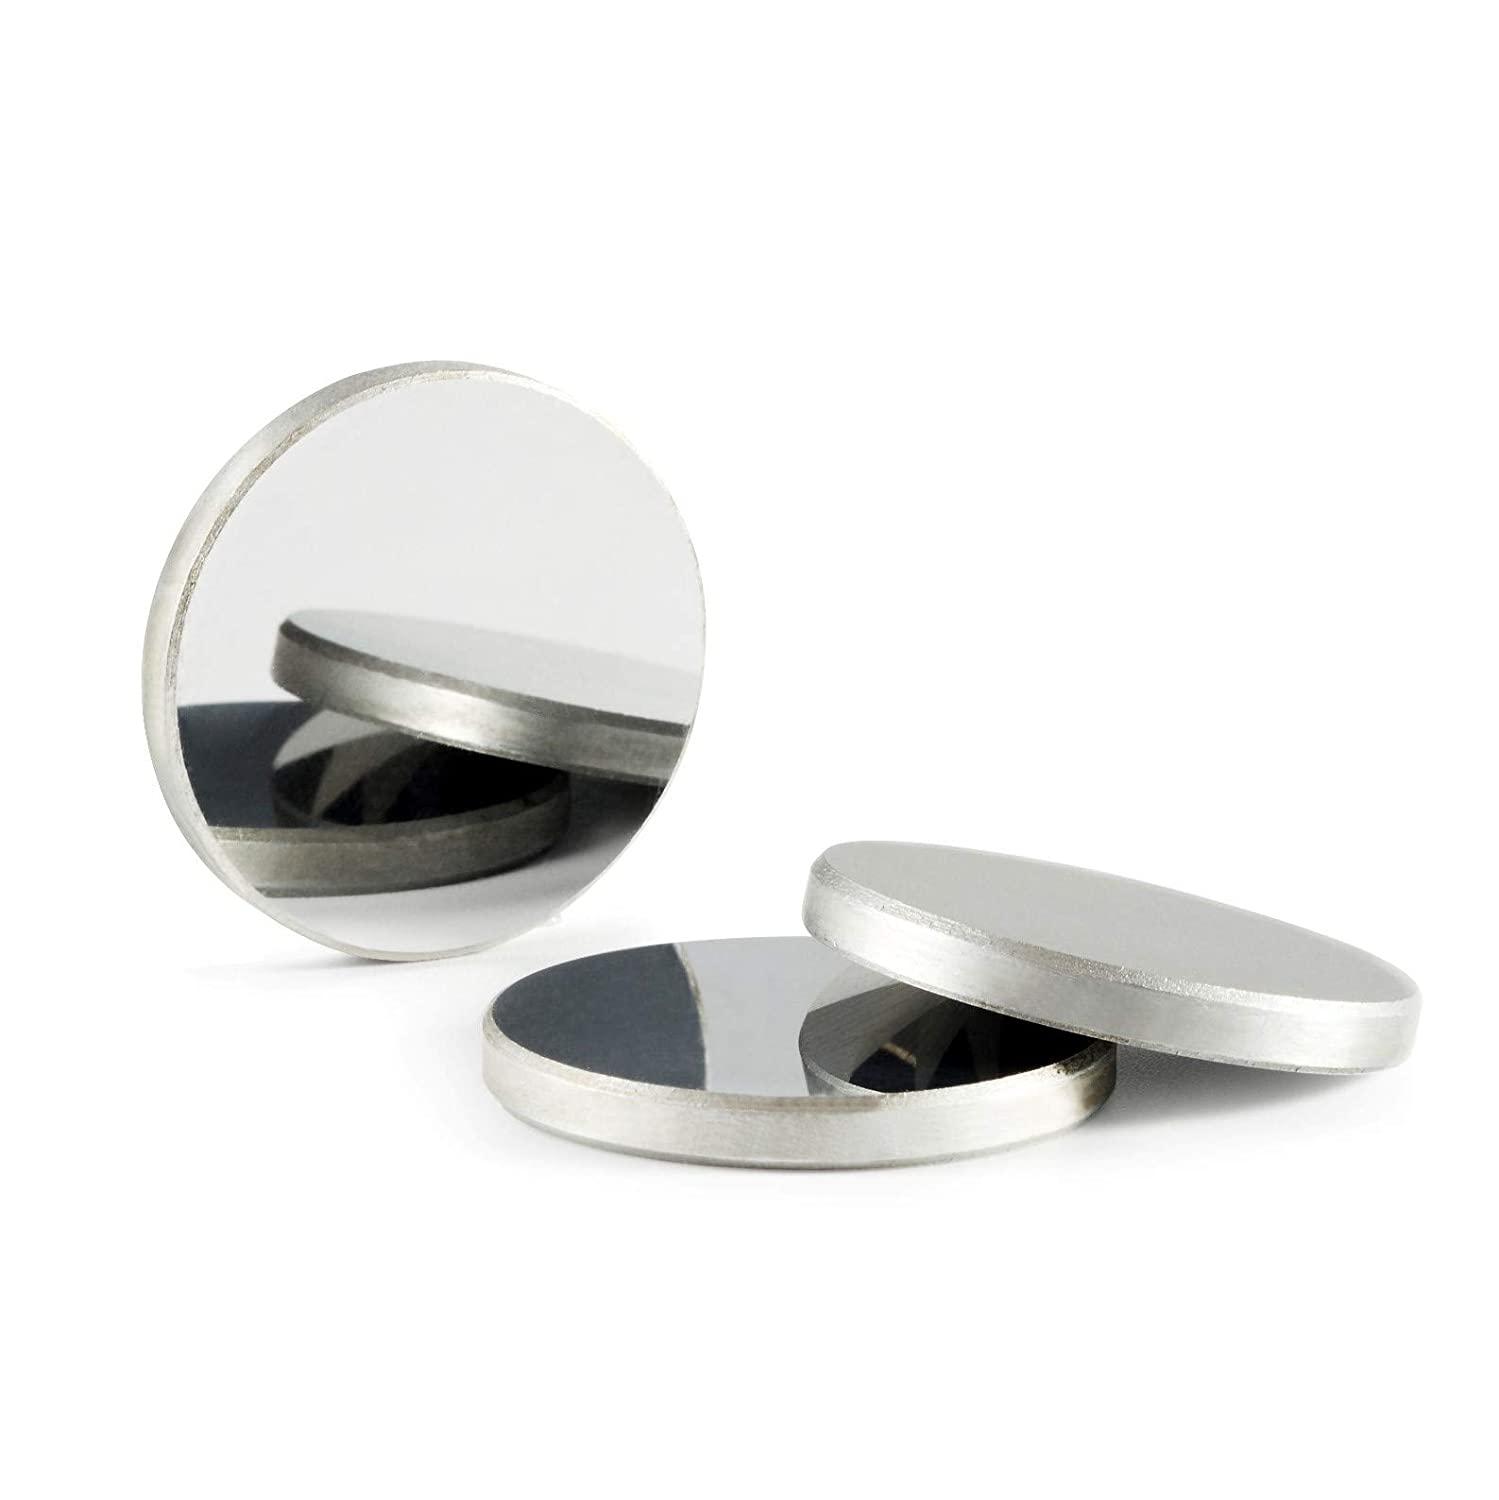 TEH HIGH 3 pieces Diameter 20mm Molybdenum MO Reflector lens for CO2 Laser Cutting engraving machine